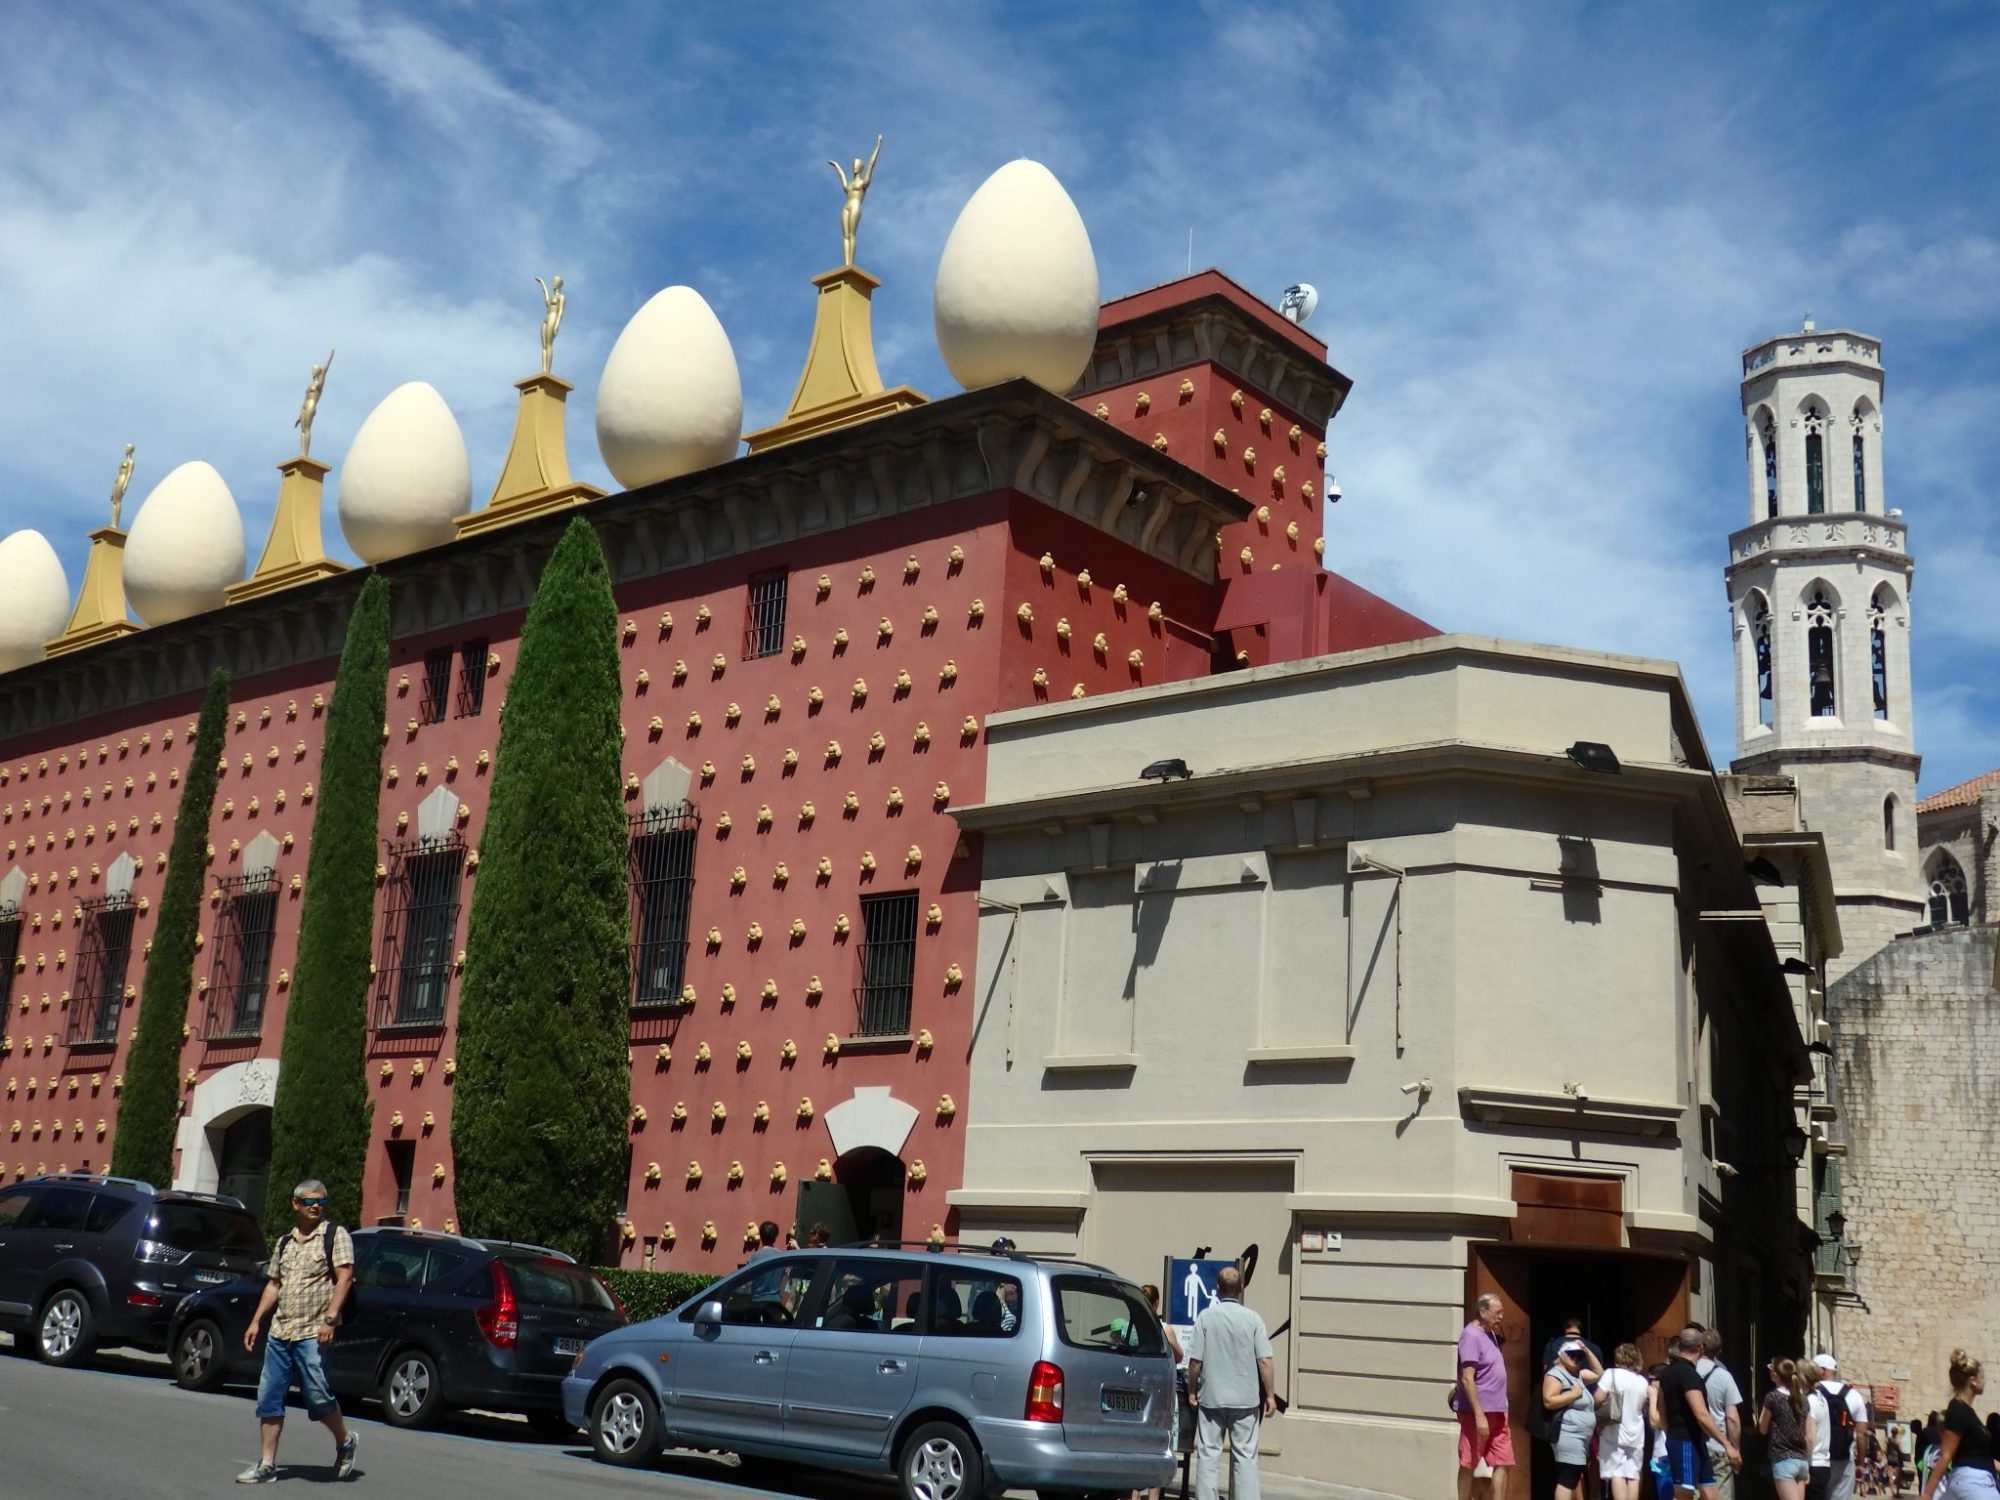 The outside of the building is dark red, with gold-colored bumps (actually a fat human figure from close up). Along the top is a row of large white eggs taller than a person. Between the eggs are a series of statues on pedestals painted gold.